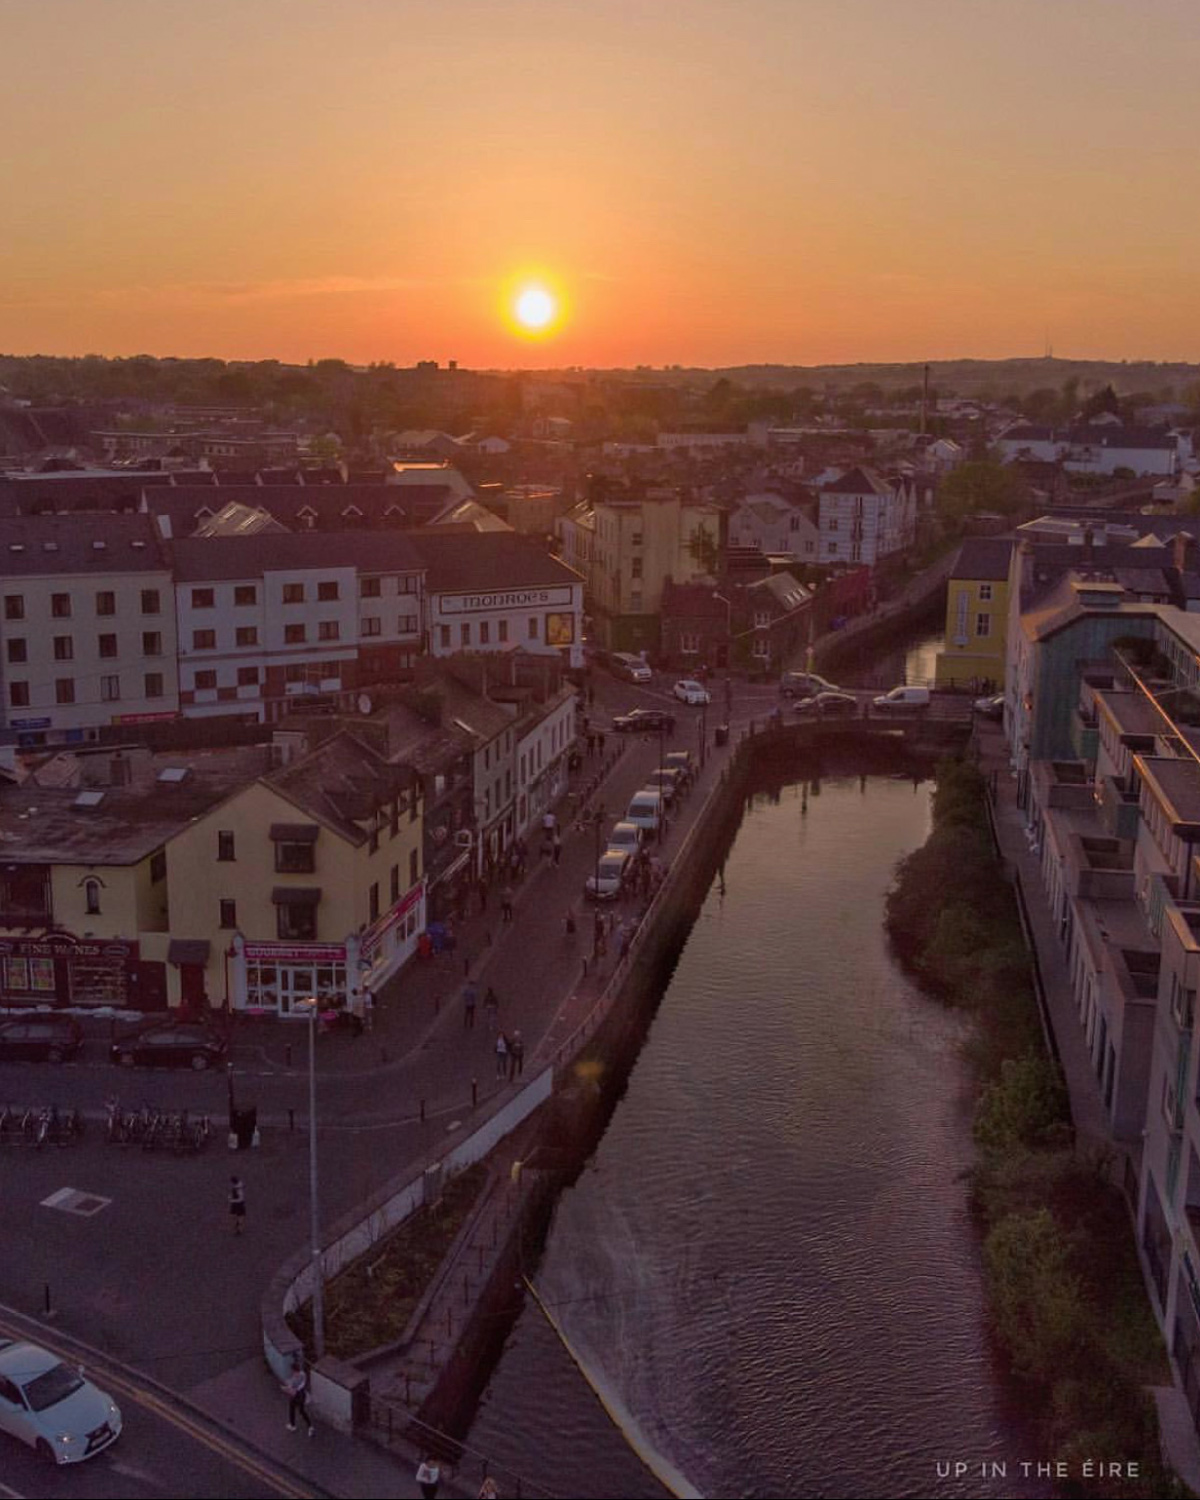 Photo by Up in the Eire